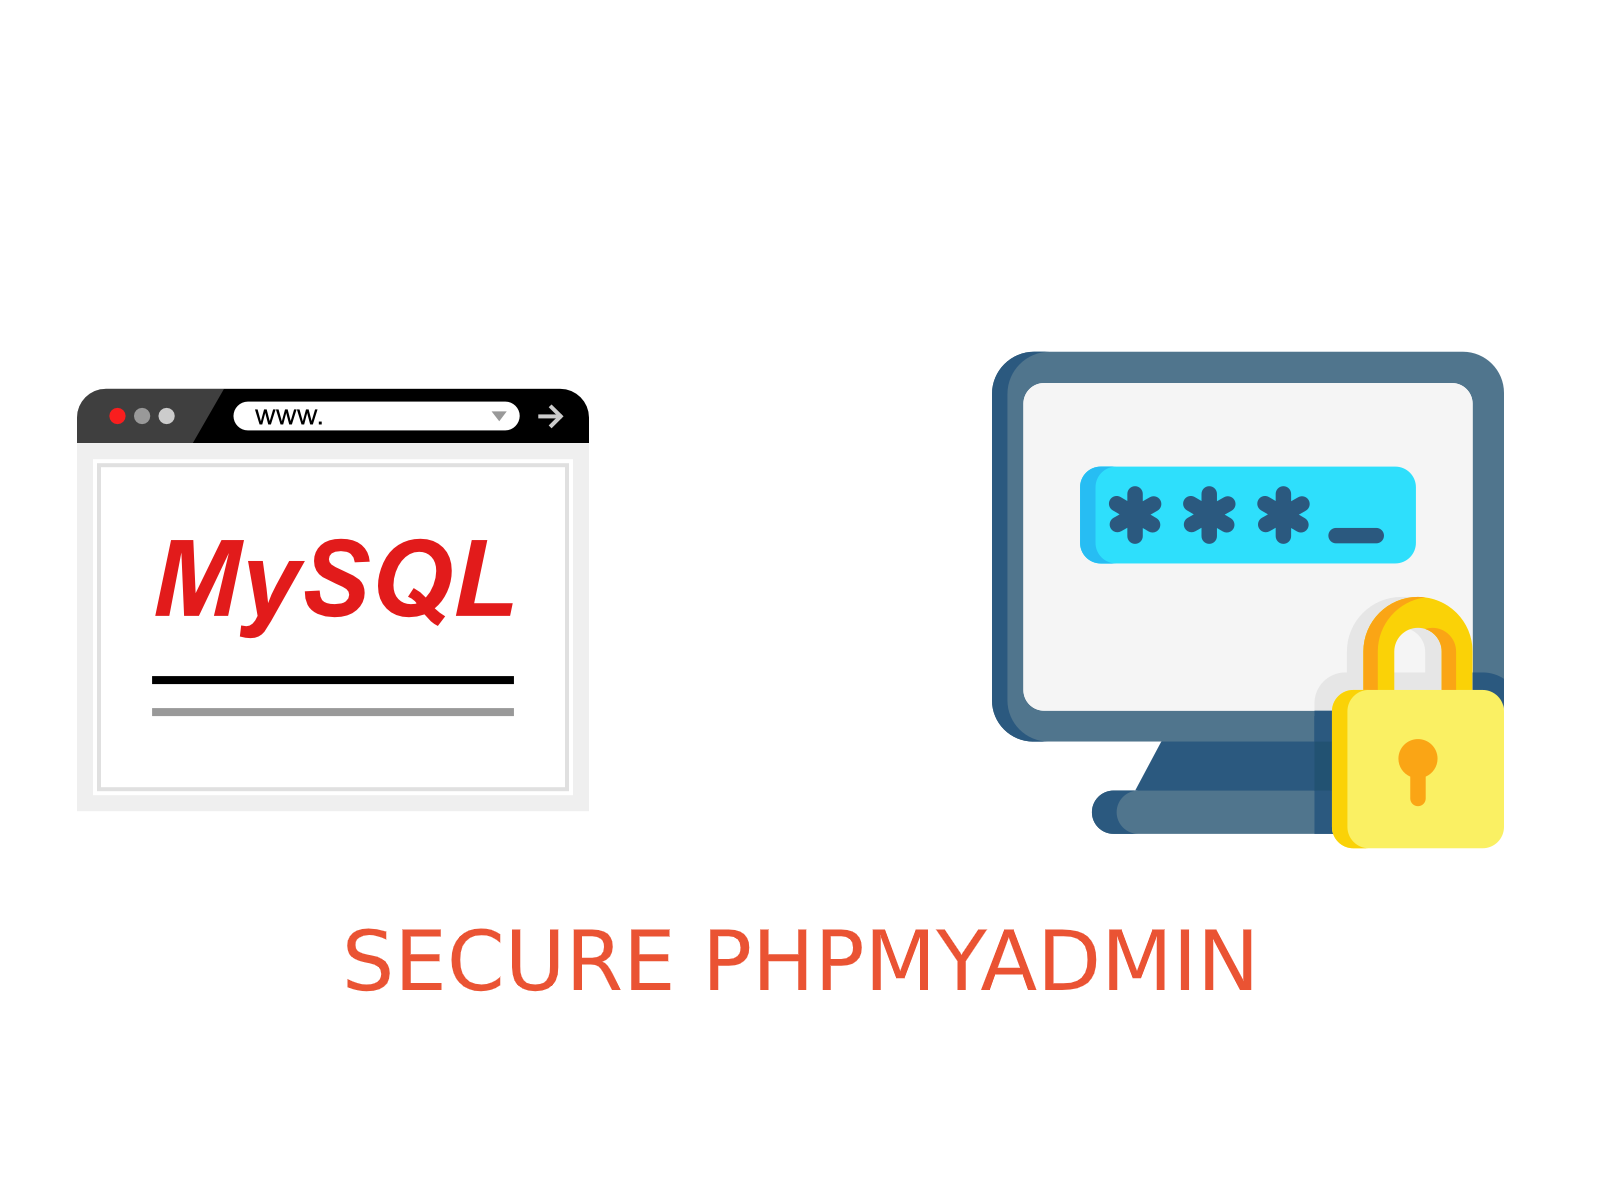 SECURE PHPMYADMIN WITH HTACCESS